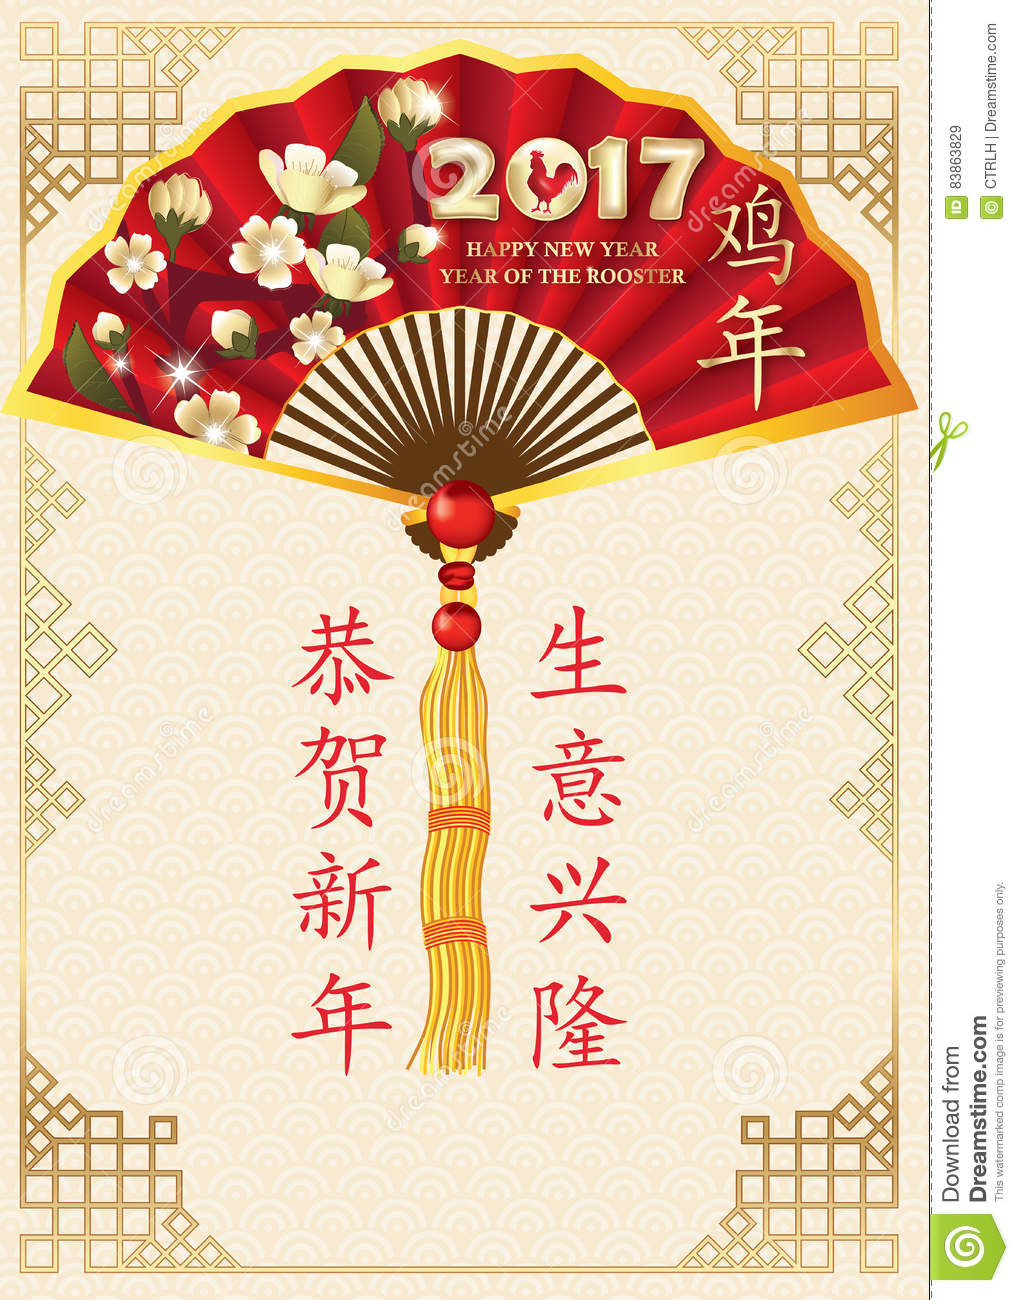 Chinese new year of rooster 2017 printable greeting card stock royalty free stock photo kristyandbryce Gallery